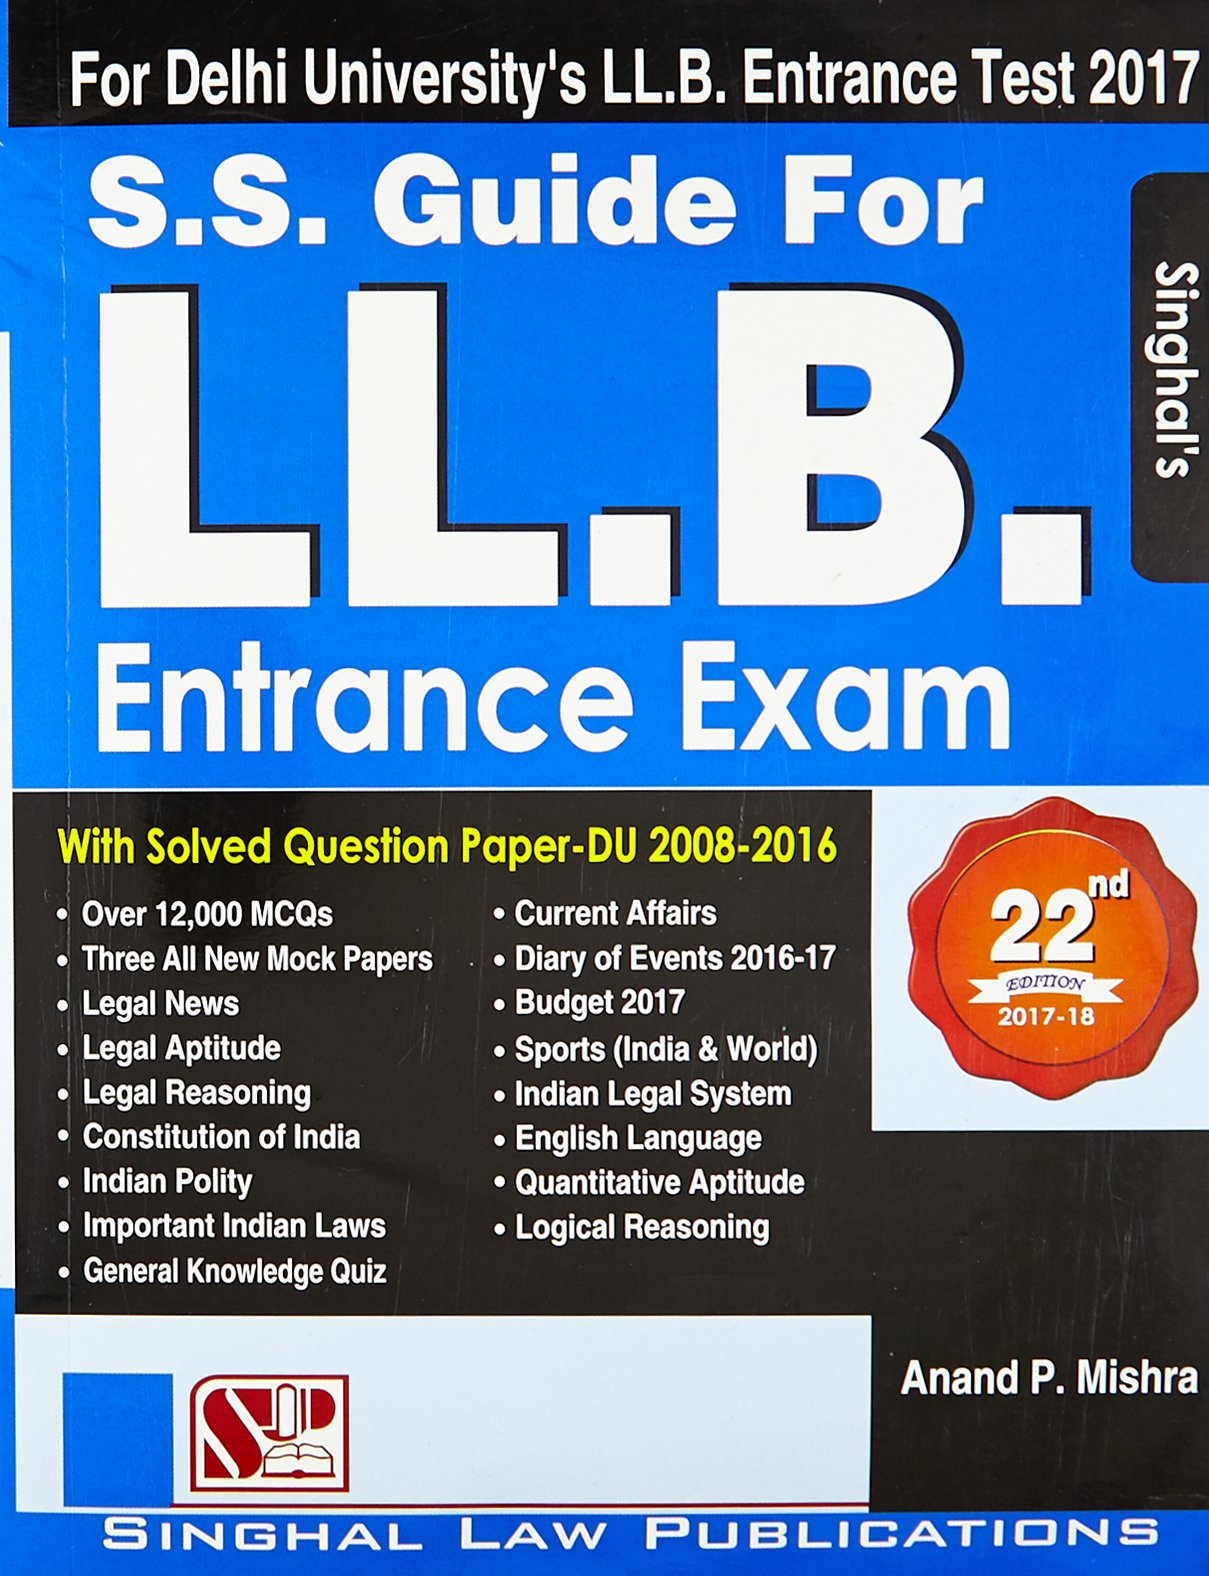 Buy S.S Guide for L.L.B Entrance Exam Book Online at Low Prices in India |  S.S Guide for L.L.B Entrance Exam Reviews & Ratings - Amazon.in